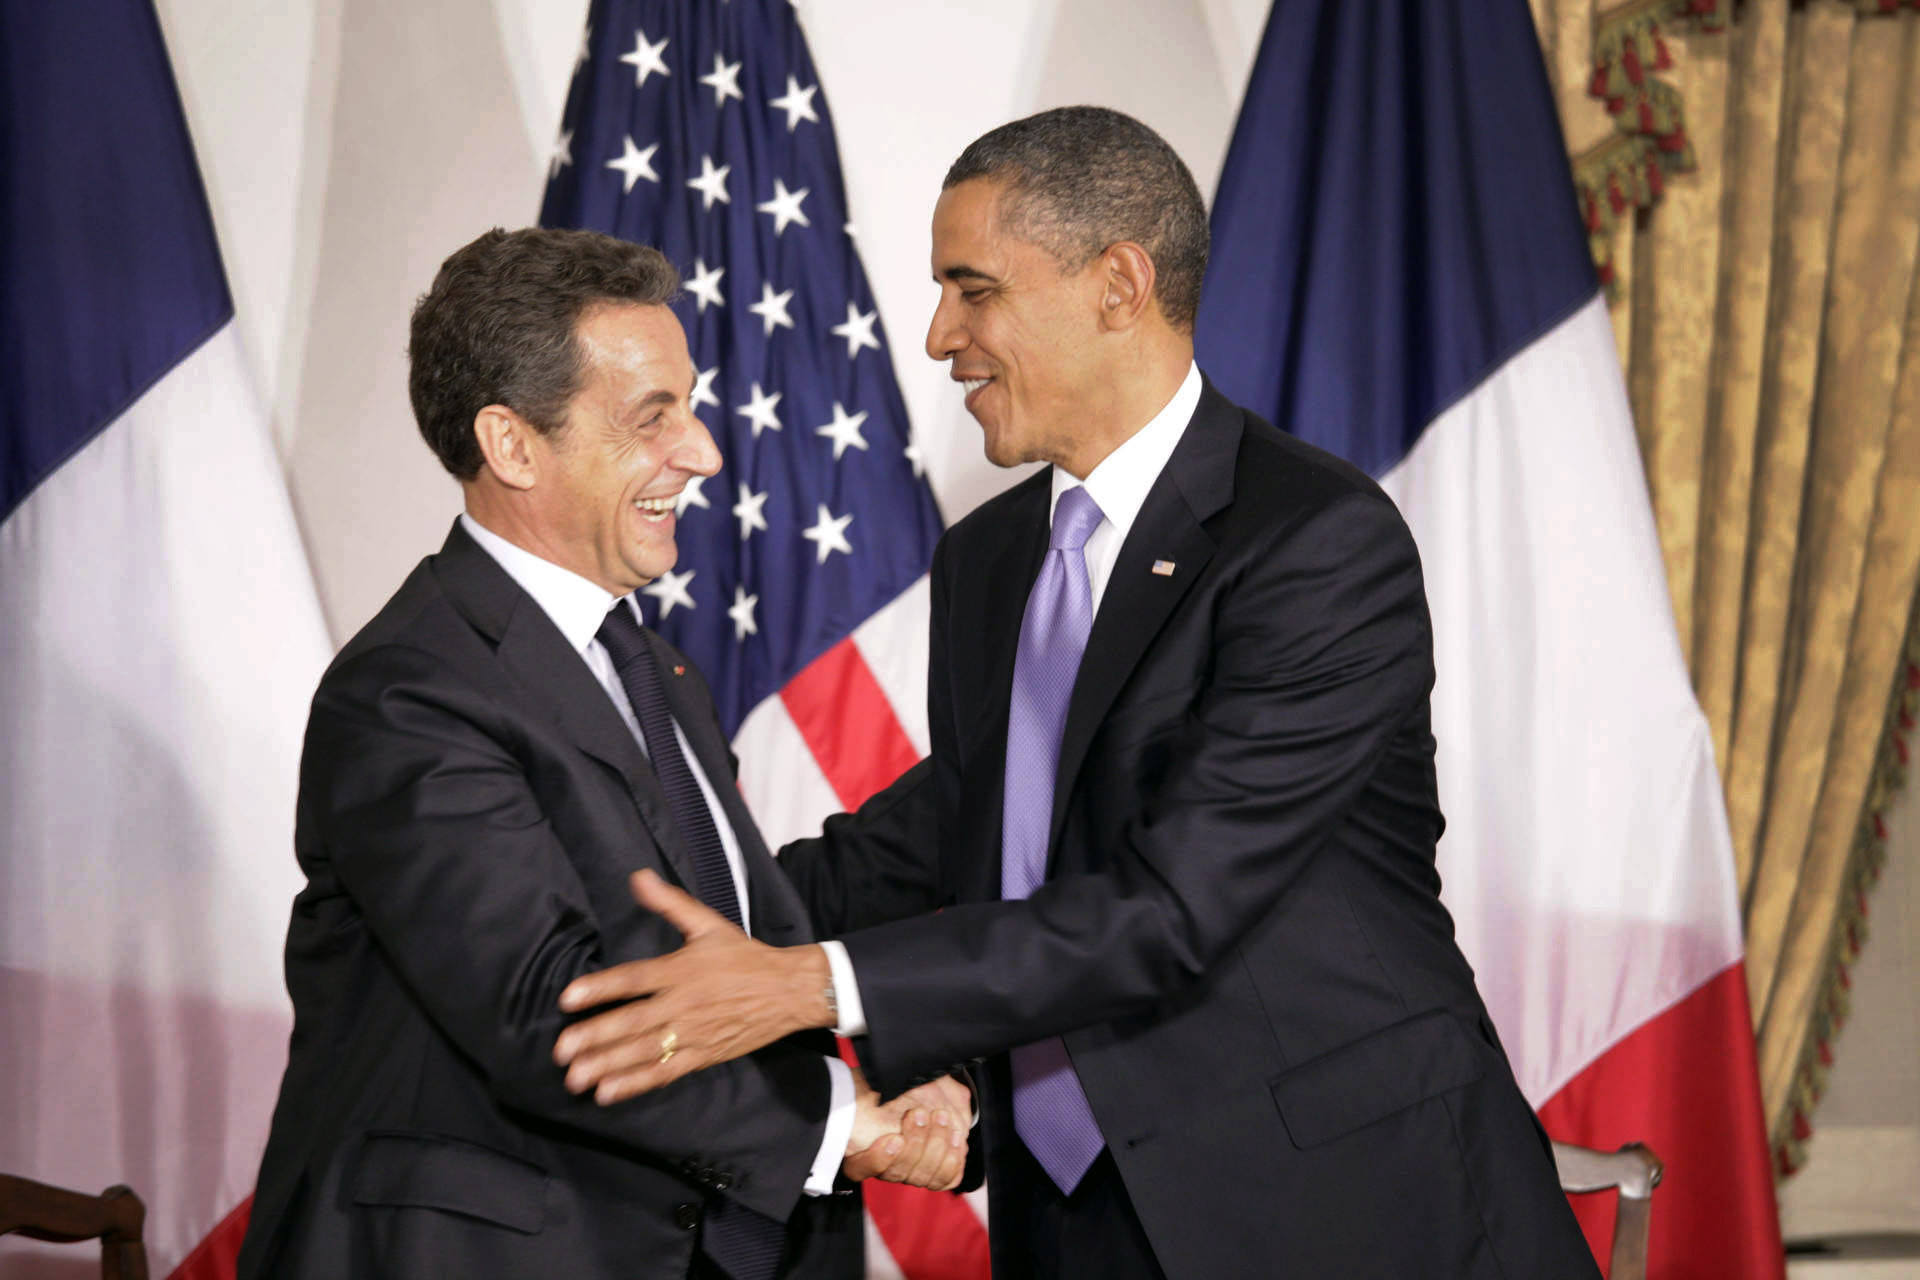 President obama meets with world leaders on day two at the un president barack obama greets president nicolas sarkozy of france m4hsunfo Image collections